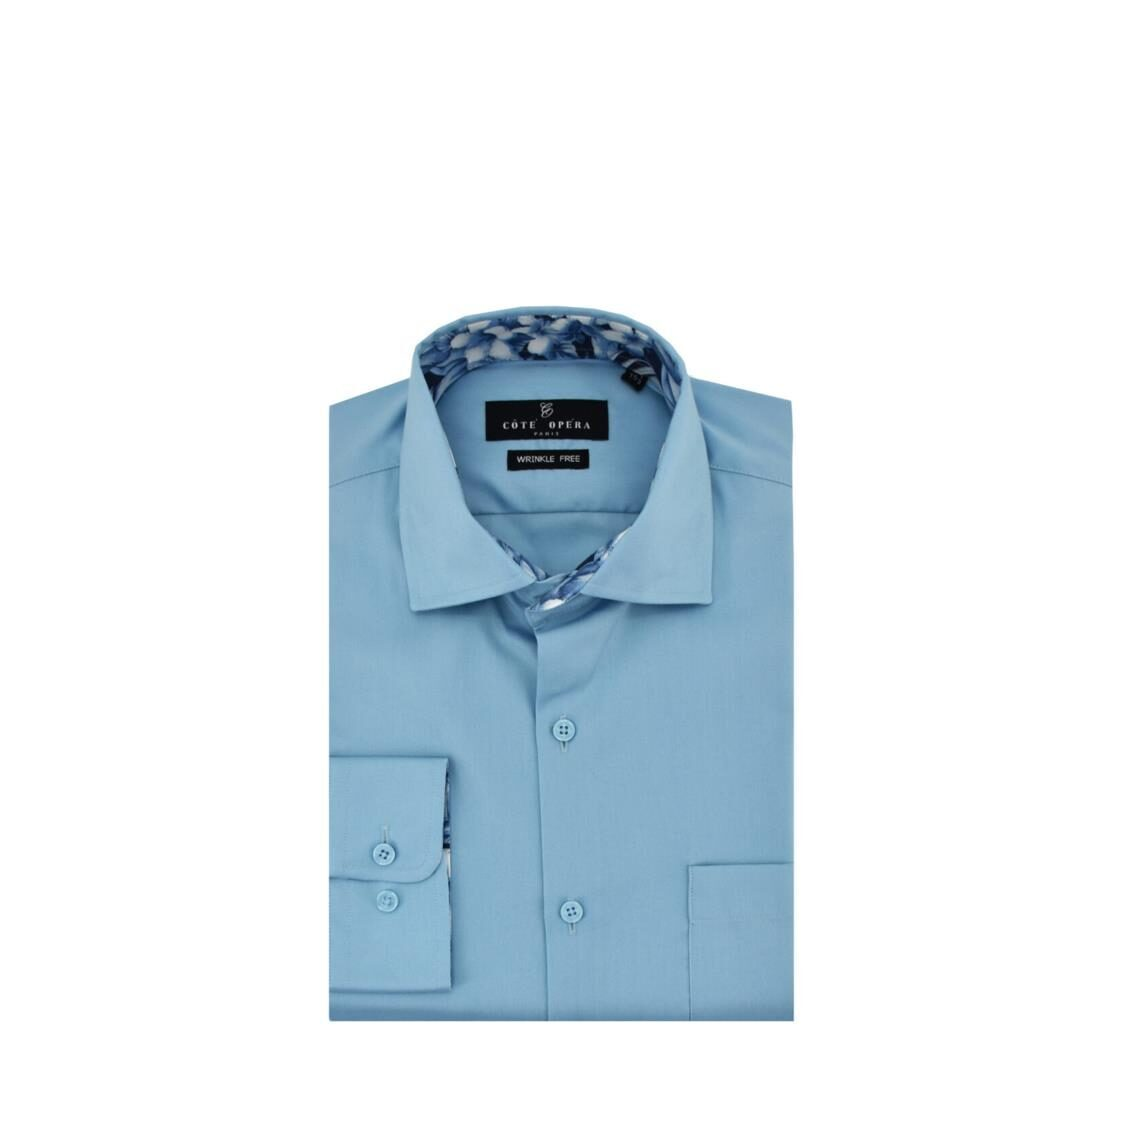 Cote Opera Long-Sleeved Shirt with Wrinkle-Free  Moist Cured finish - Blue